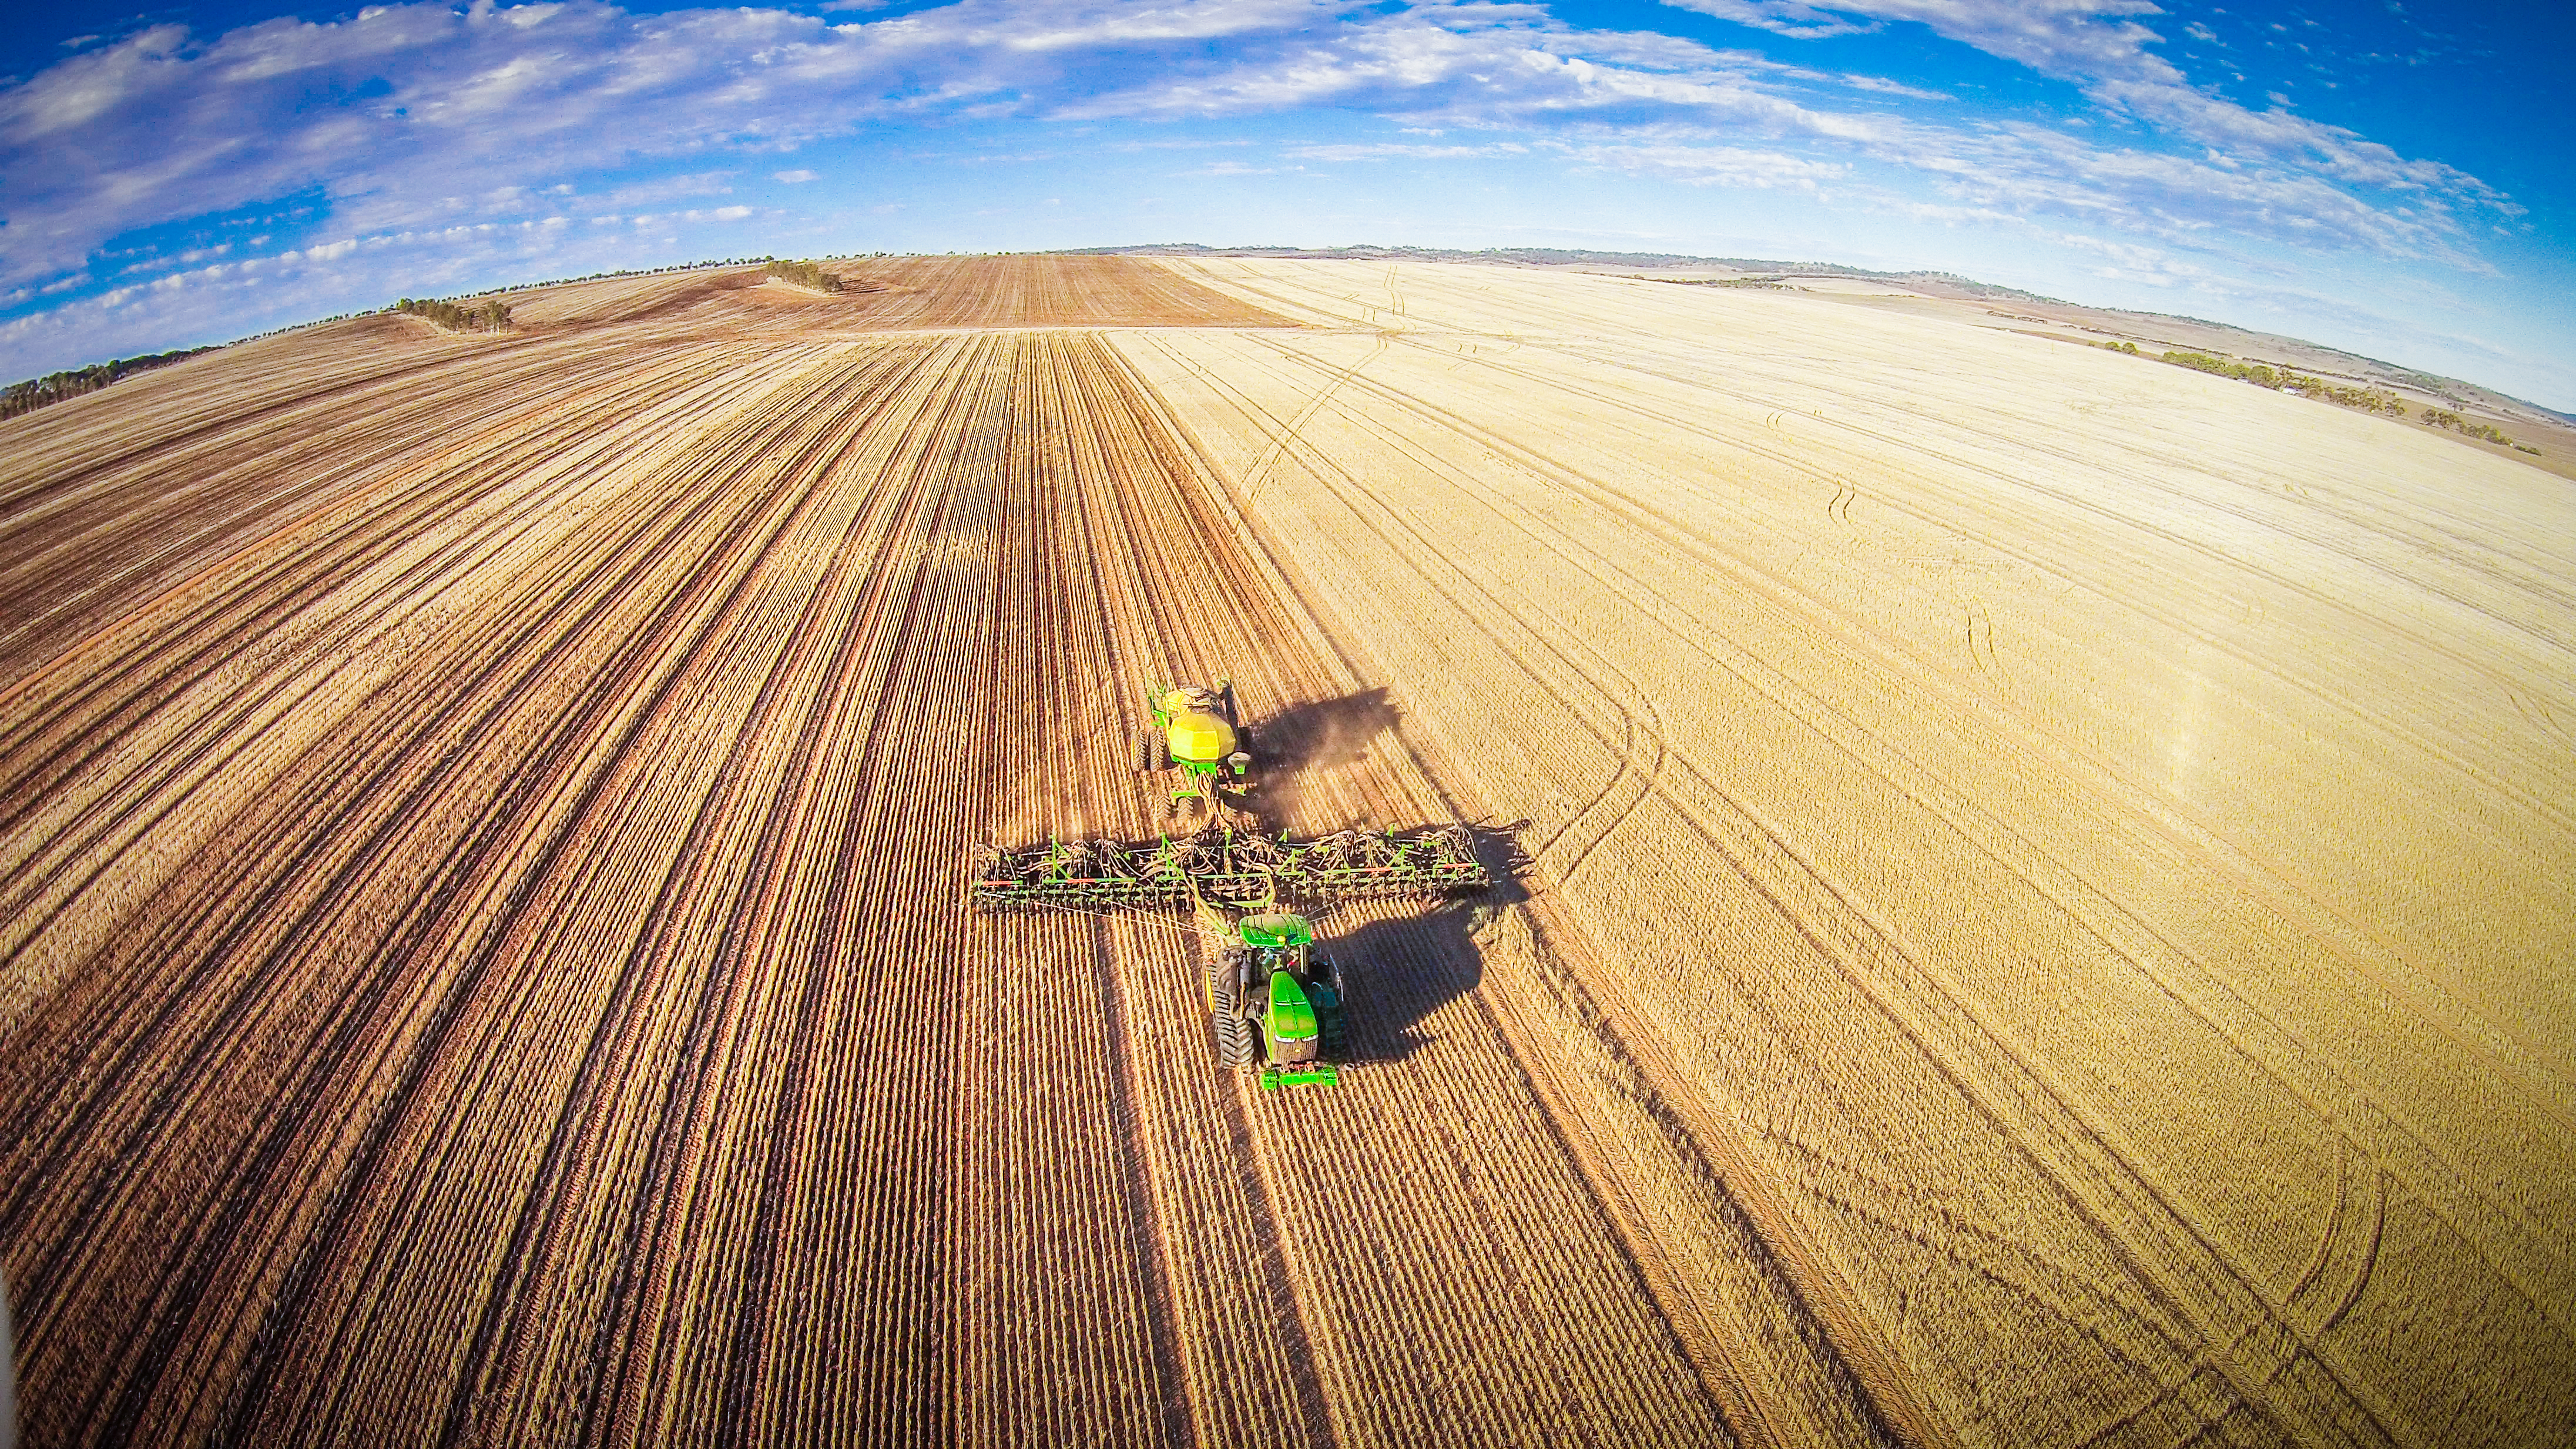 Agworld client, Maitland, Aerial wheat harvesting drone